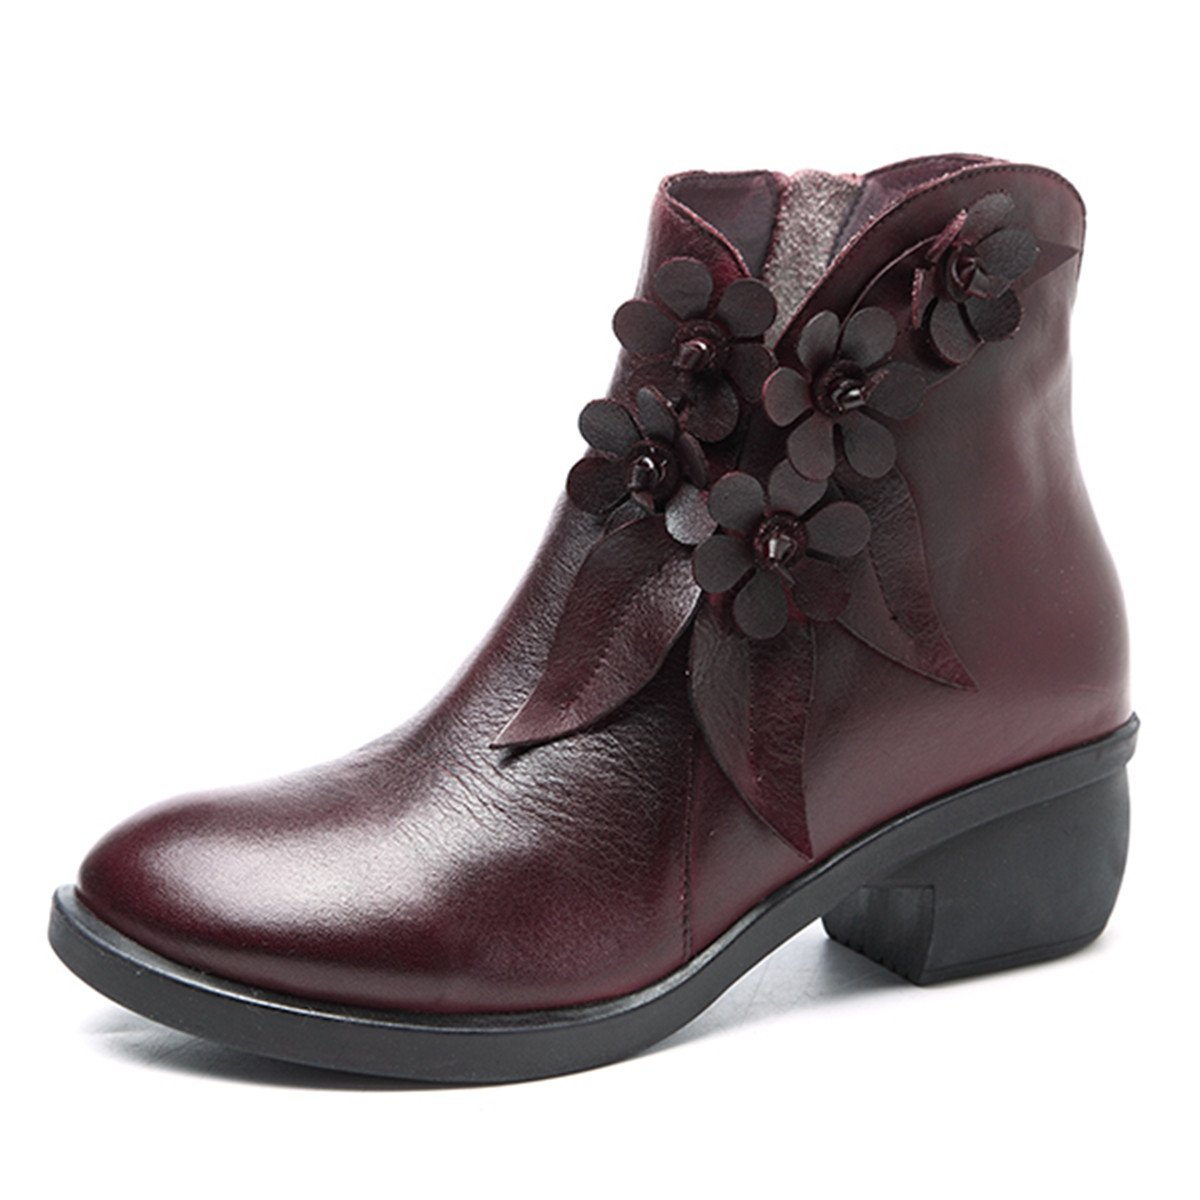 Socofy Leather Ankle Bootie, Women's Vintage Handmade Fashion Leather Boot Rose Floral Shoes Oxford Boots B077G6YKT4 9 M US|Red Style 2